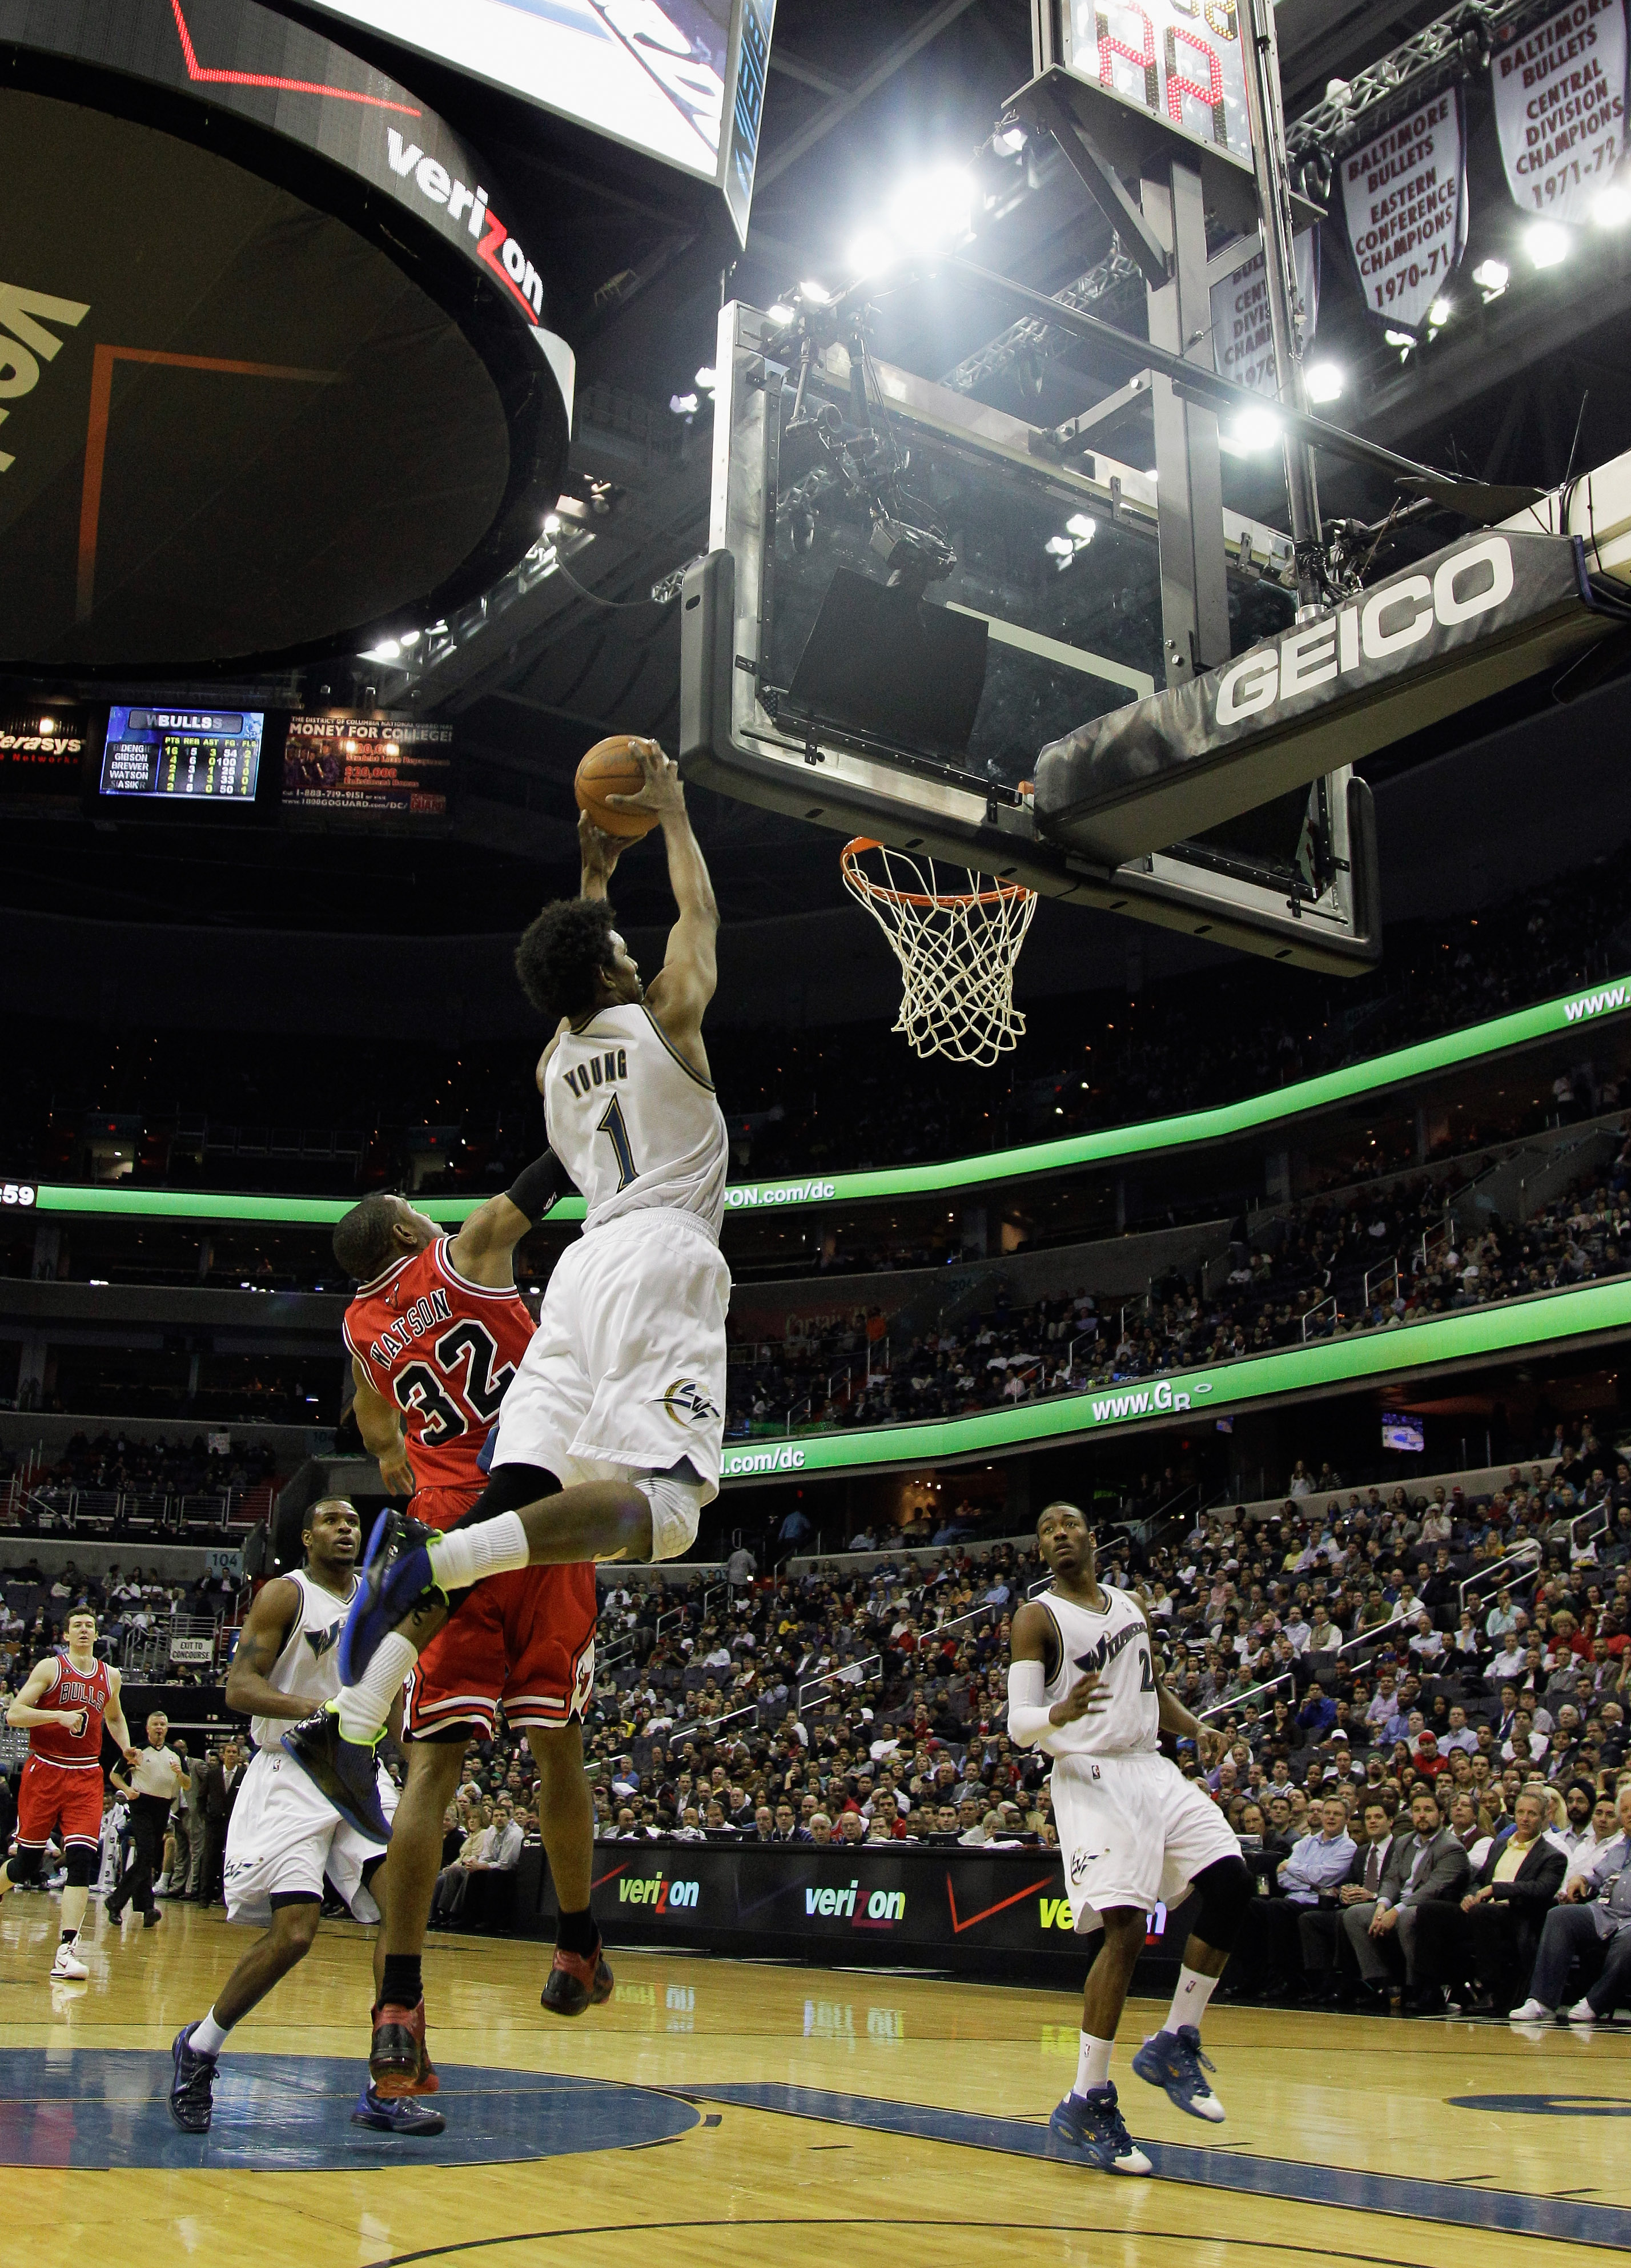 WASHINGTON, DC - FEBRUARY 28: Nick Young #1 of the Washington Wizards and C.J. Watson #32 of the Chicago Bulls at the Verizon Center in Washington on February 28, 2011 in Washington, DC. NOTE TO USER: User expressly acknowledges and agrees that, by downlo